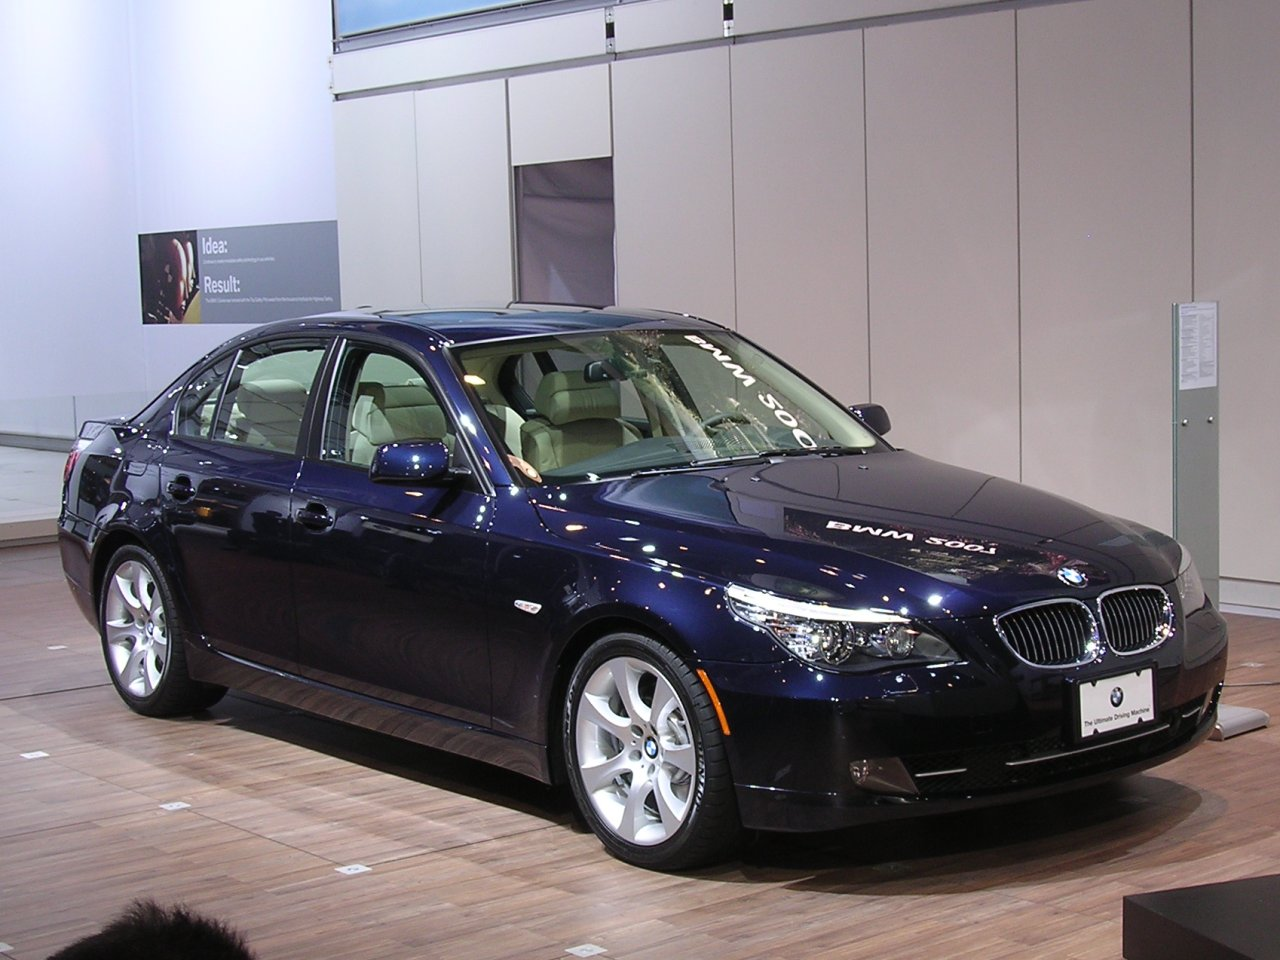 BMW 525Xi 2008 Review Amazing Pictures and Images  Look at the car